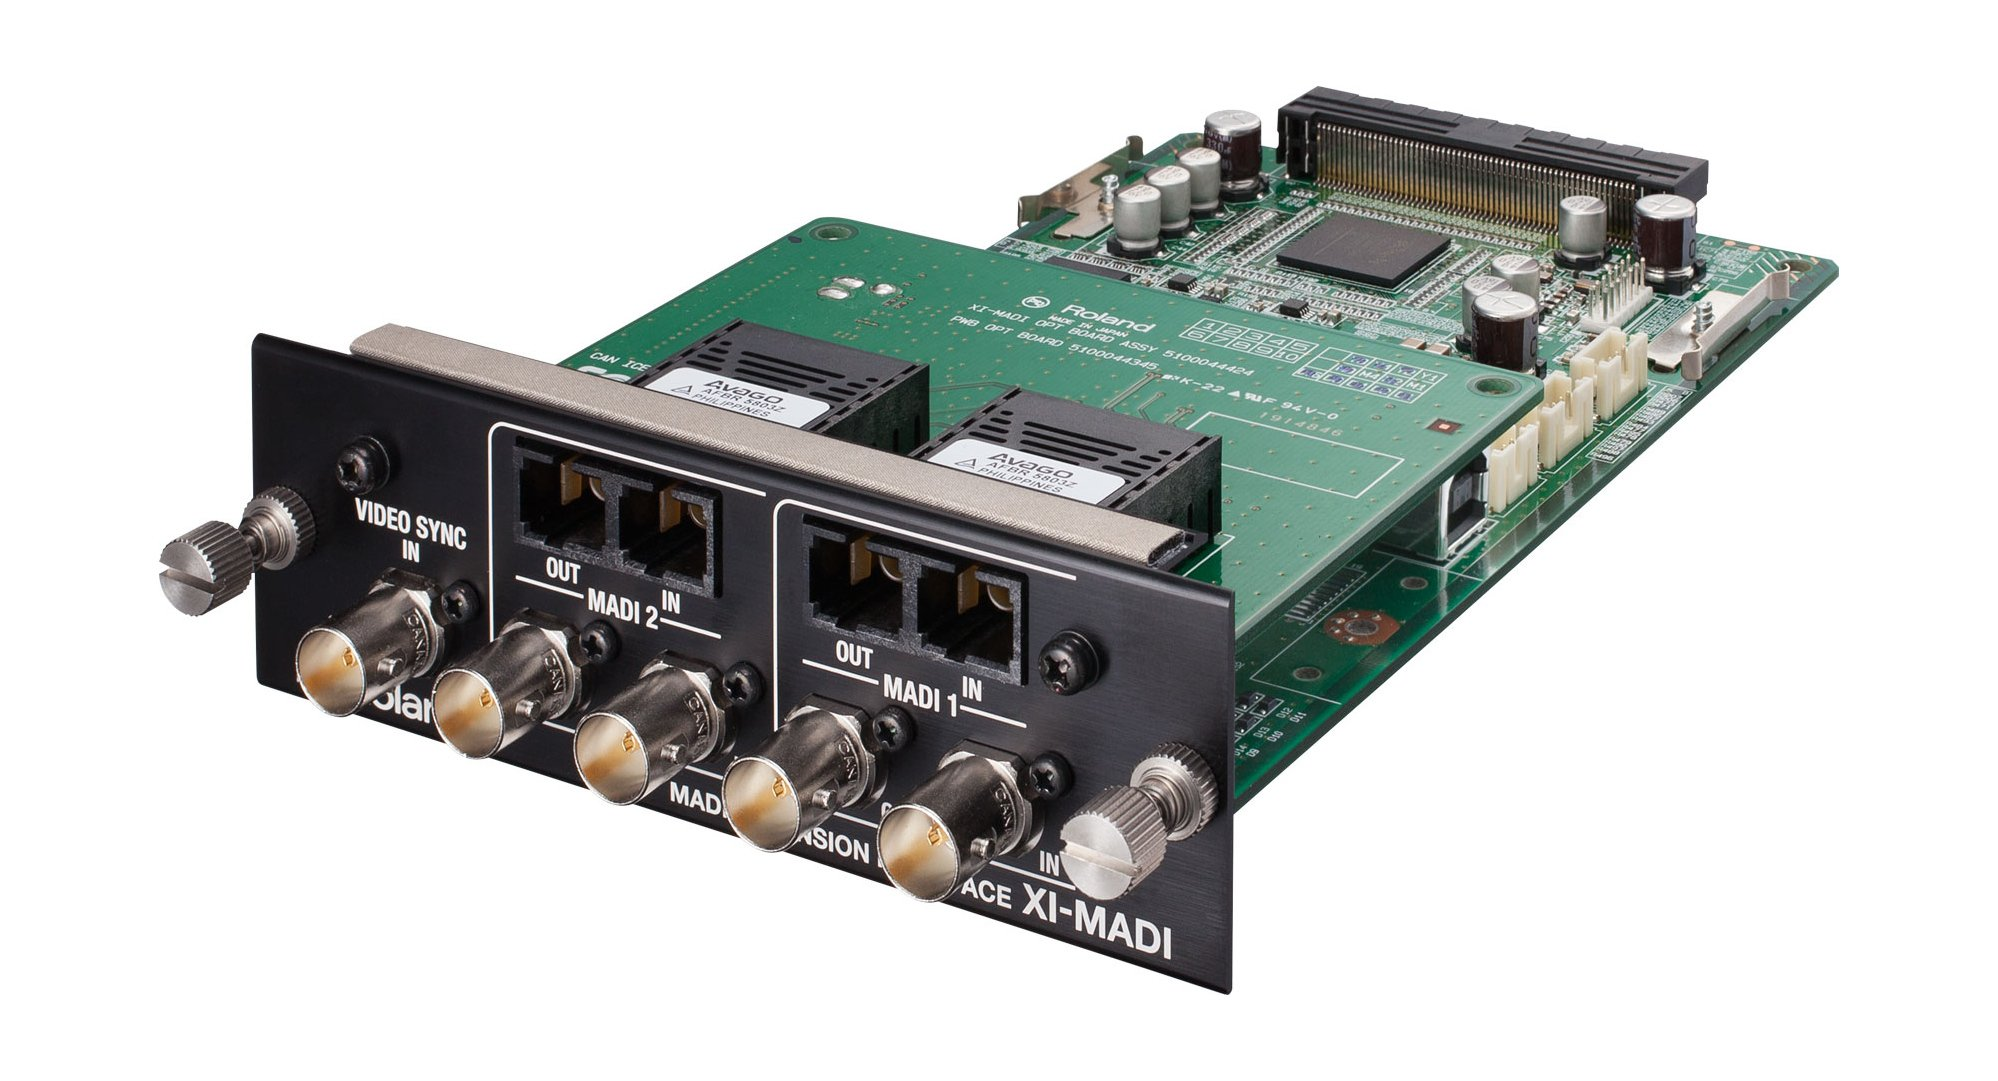 MADI Expansion interface card